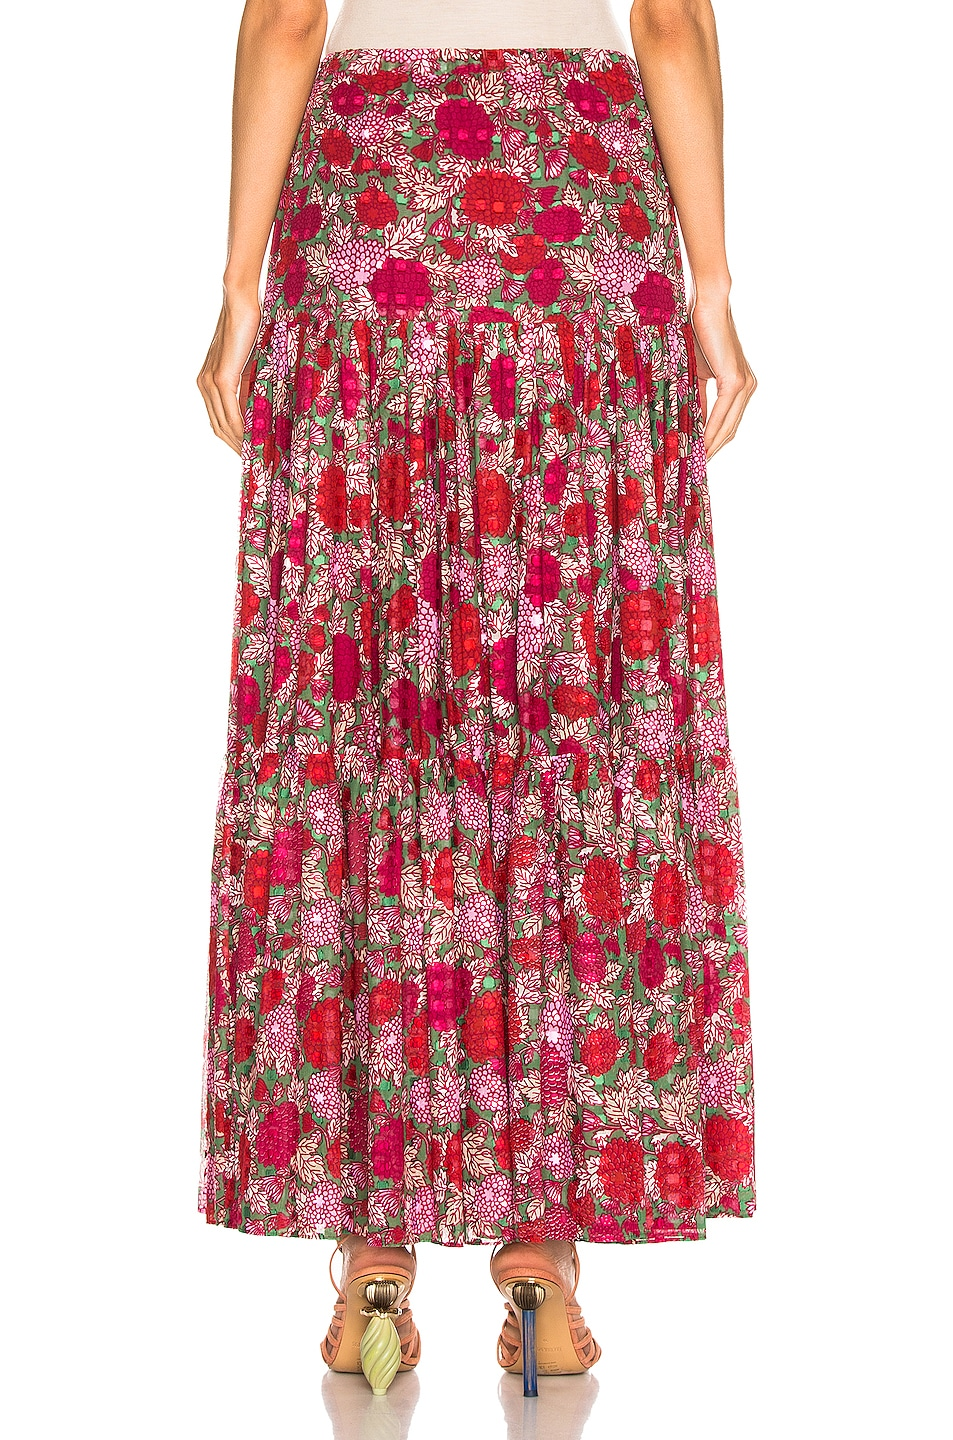 Image 3 of Alexis Grizelda Skirt in Fuchsia Bouquet